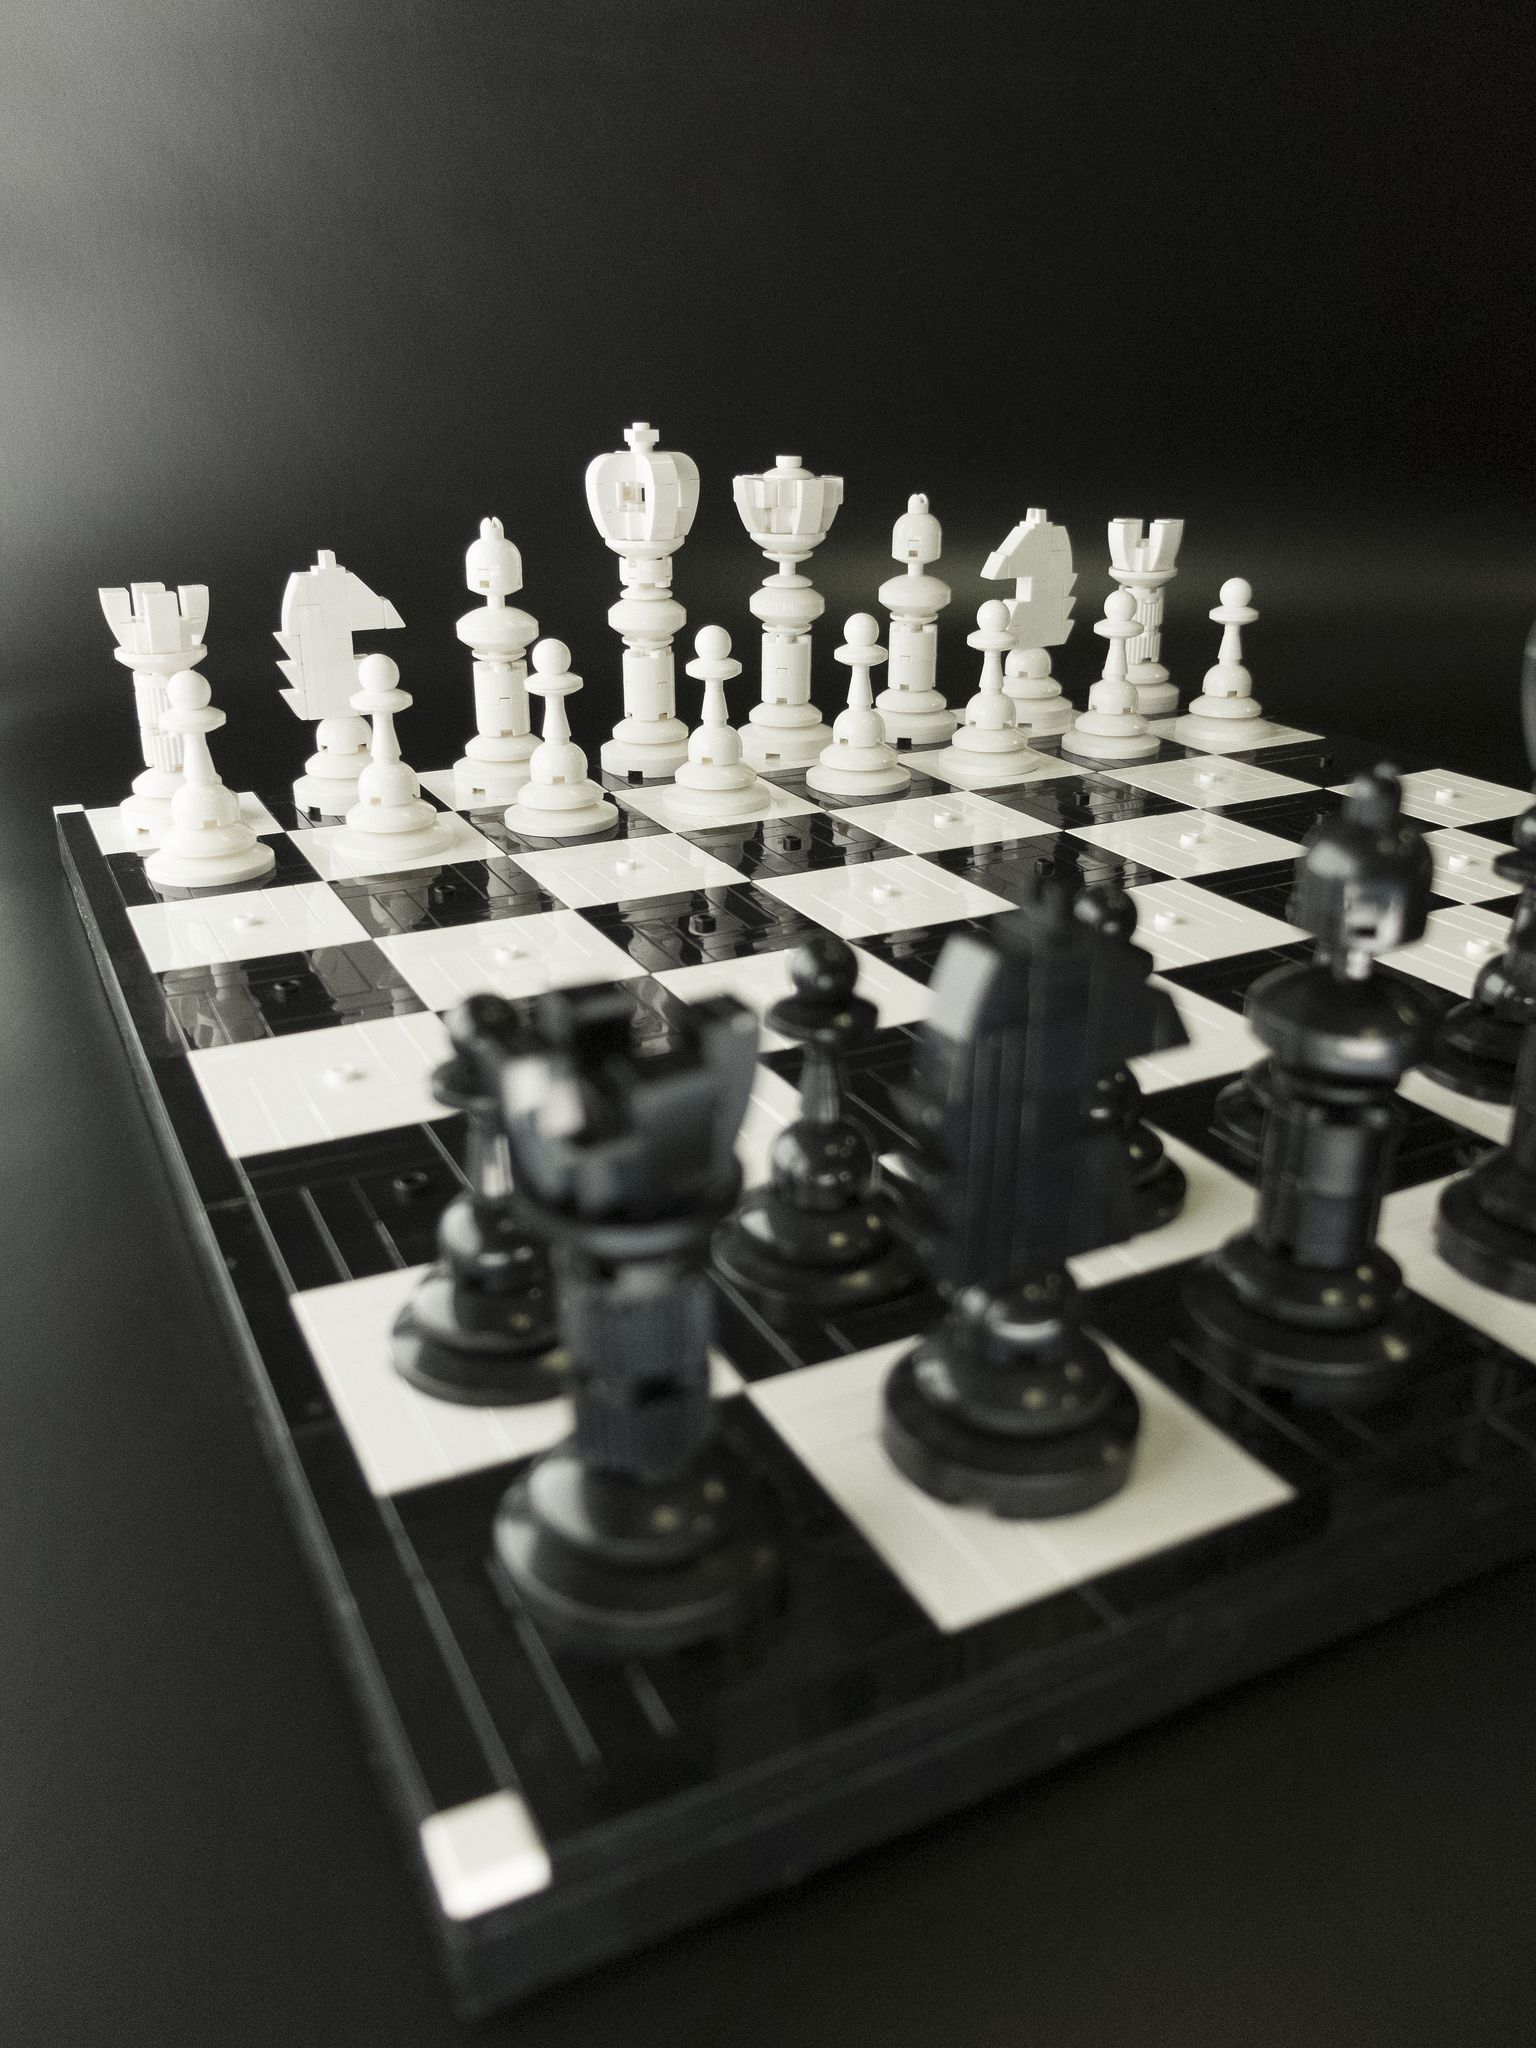 https://flic.kr/s/aHskXkuP5w   Lego Classic Chessboard   Please support at ideas.lego.com/projects/172118